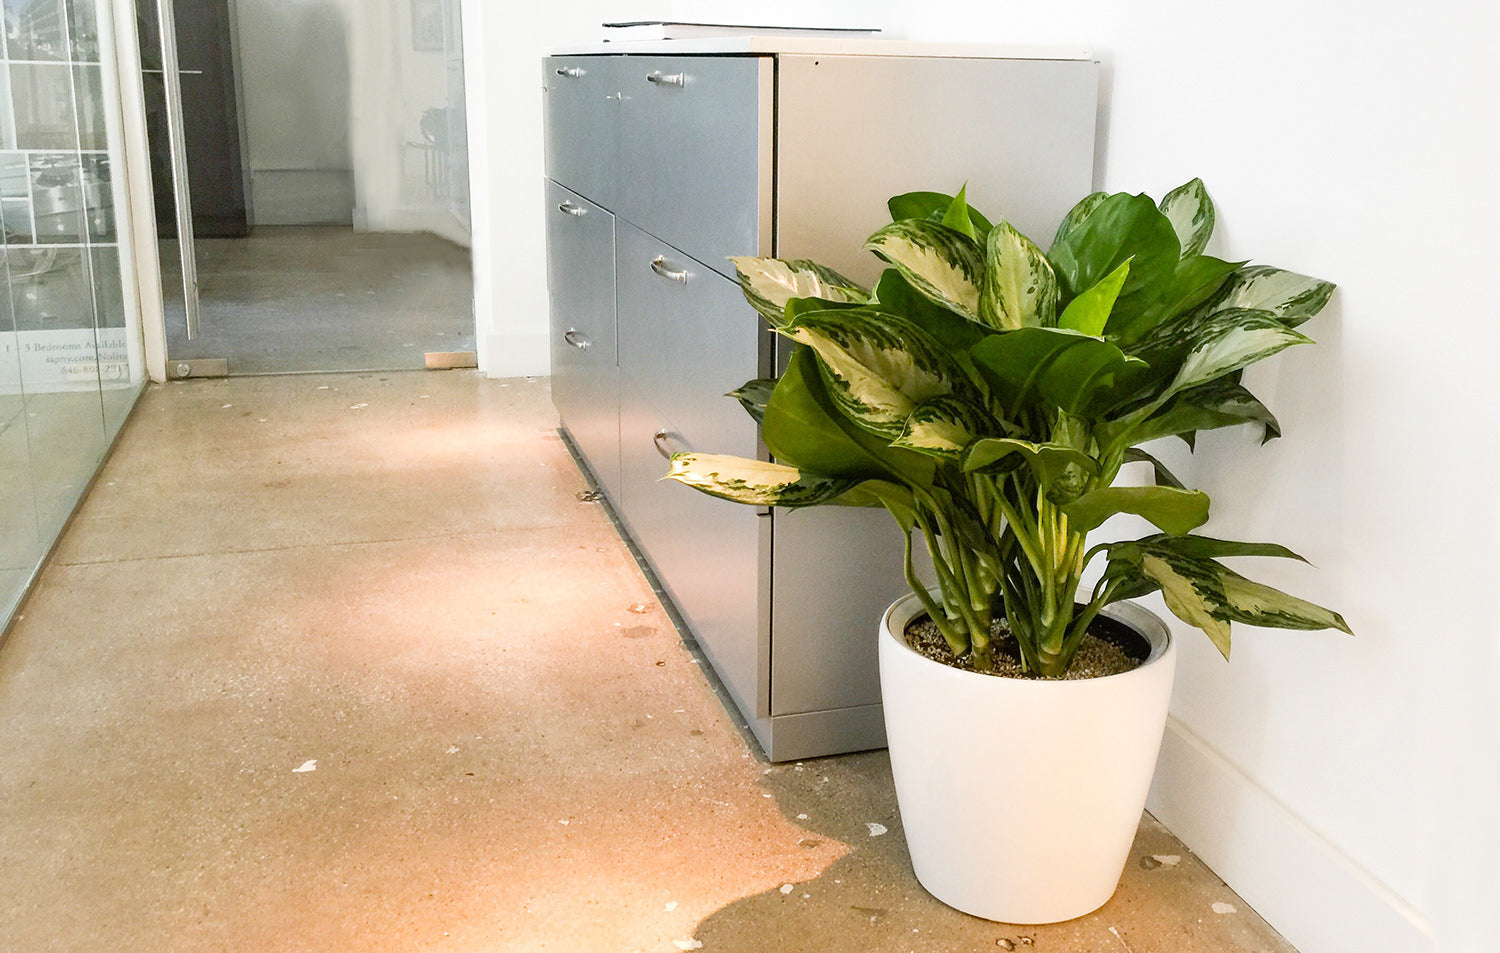 taking care of plants in an office